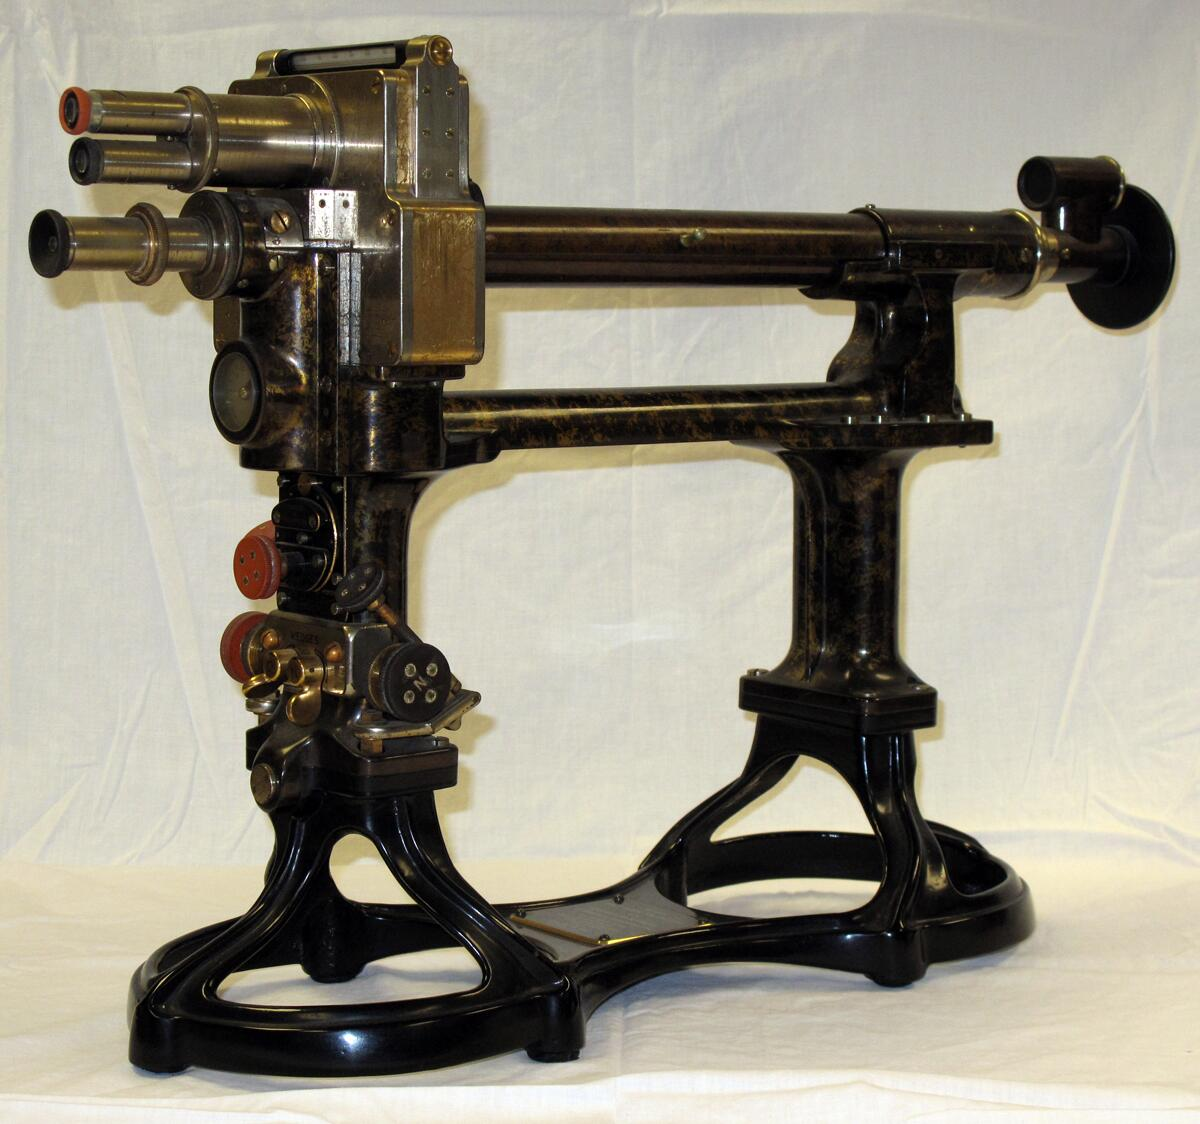 The U.S. Customs Service used optical instruments like this half shade polariscope, patented in 1907, for at least sixty years in sugar analysis. Accuracy was critical. Small degrees of difference in the samples translated to substantial overall duties assessed across a whole shipment.